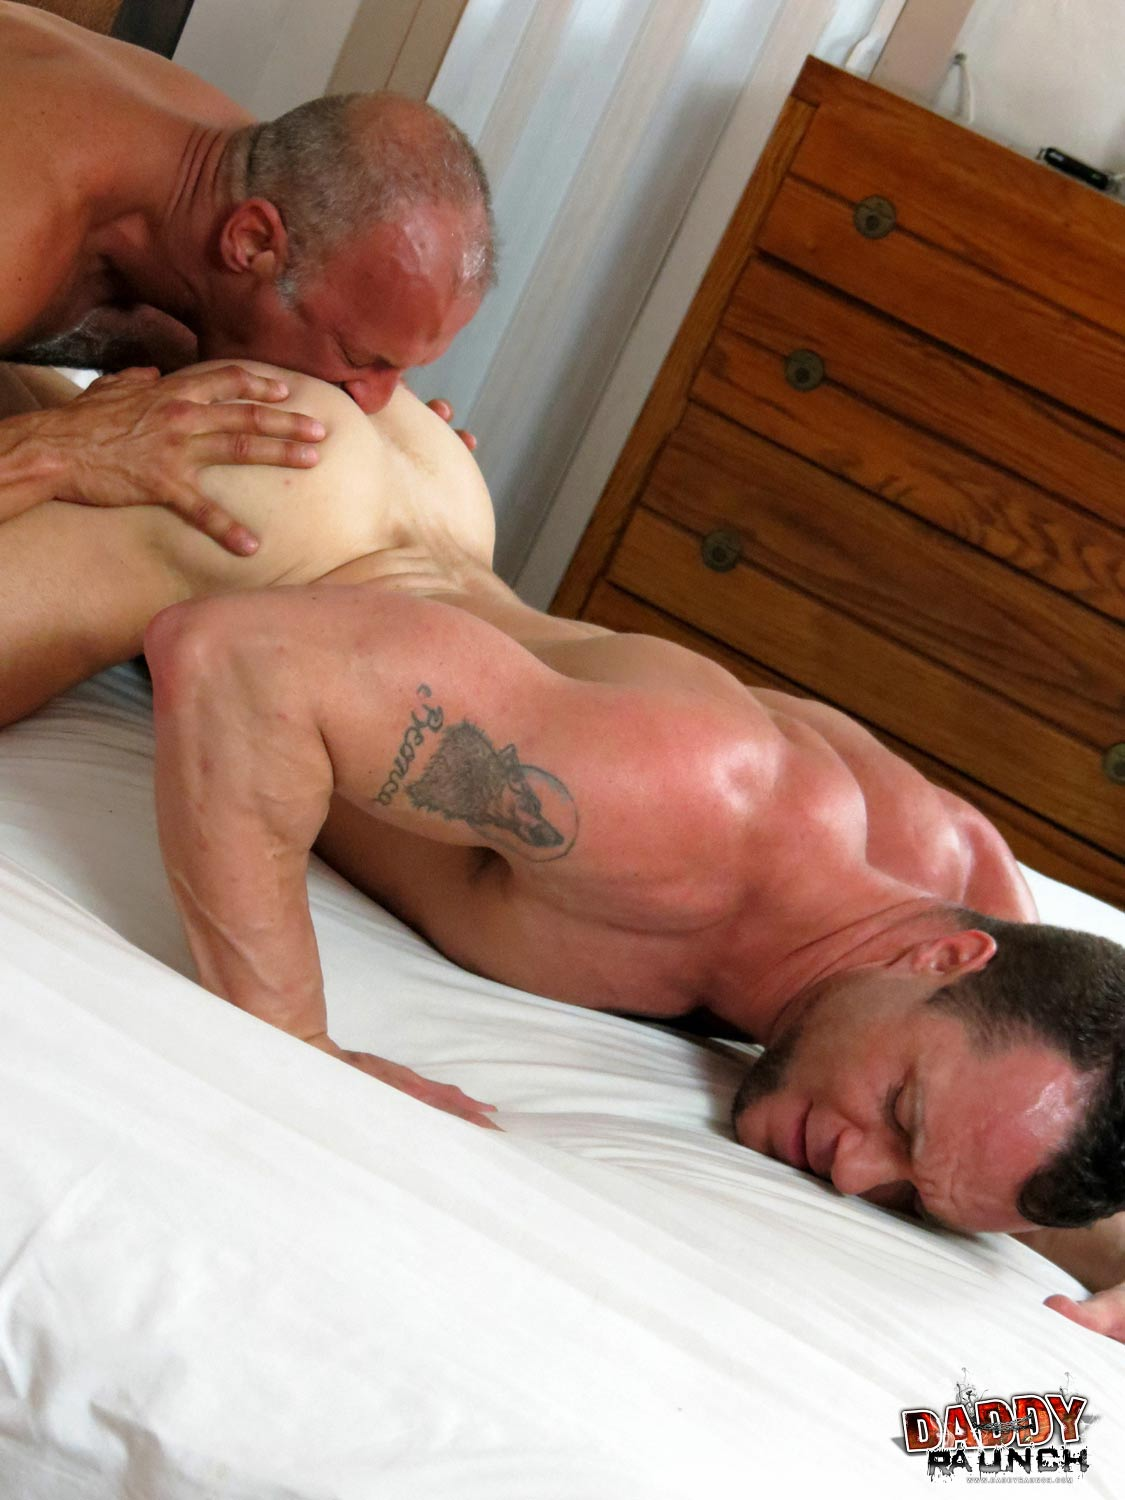 Daddy-Raunch-Coach-Austin-Drew-Sumrok-Daddy-Coach-Fucking-A-Muscle-Jock-Amateur-Gay-Porn-10 Hairy Daddy Coach Fucks A Younger Jock Bareback and Hard